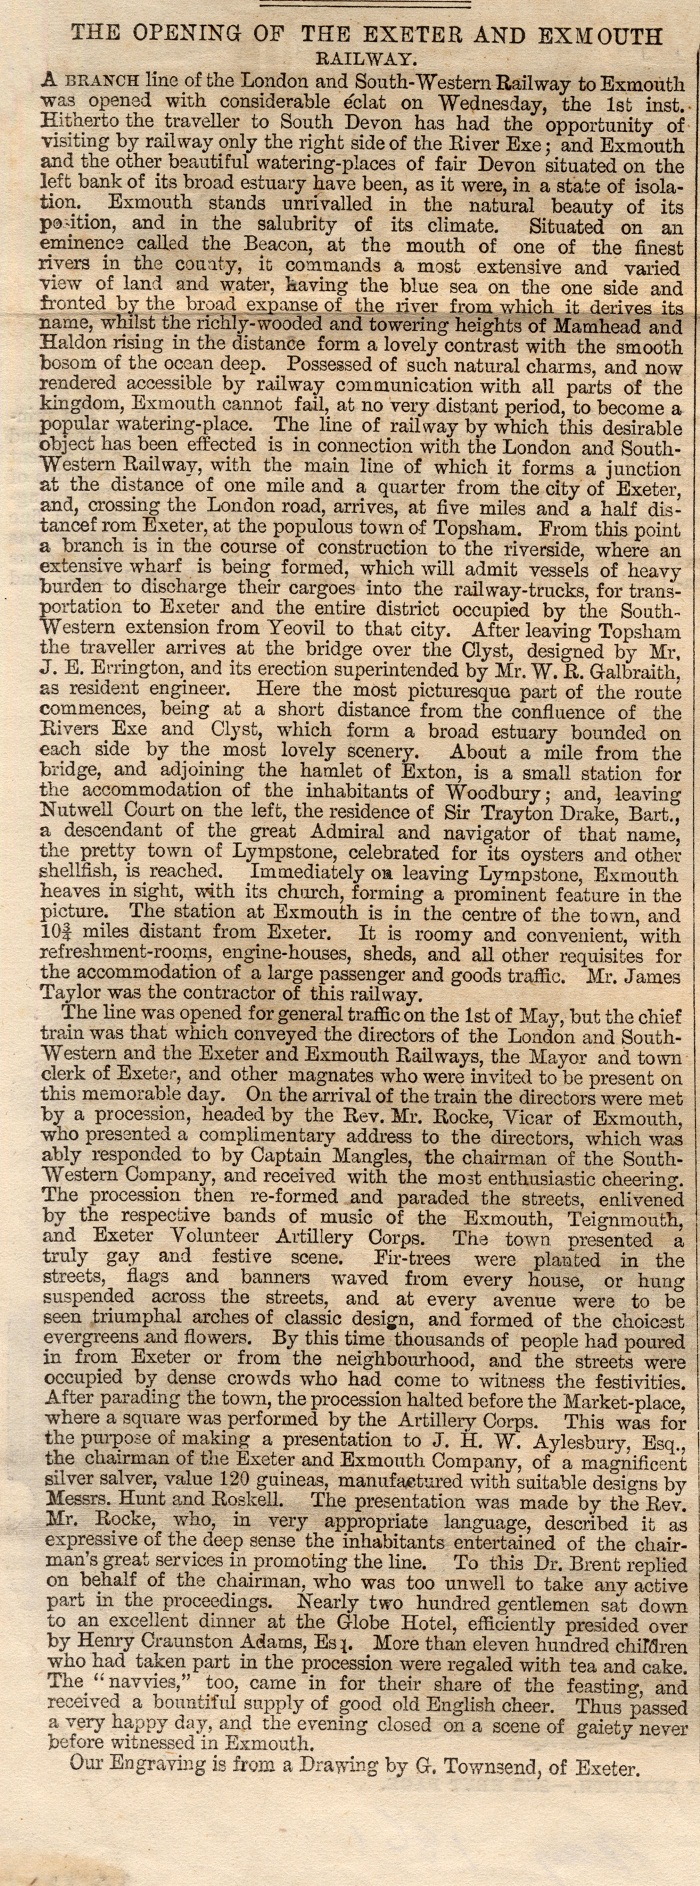 From the Illustrated London News, May 1861 - cick on image to see whole article